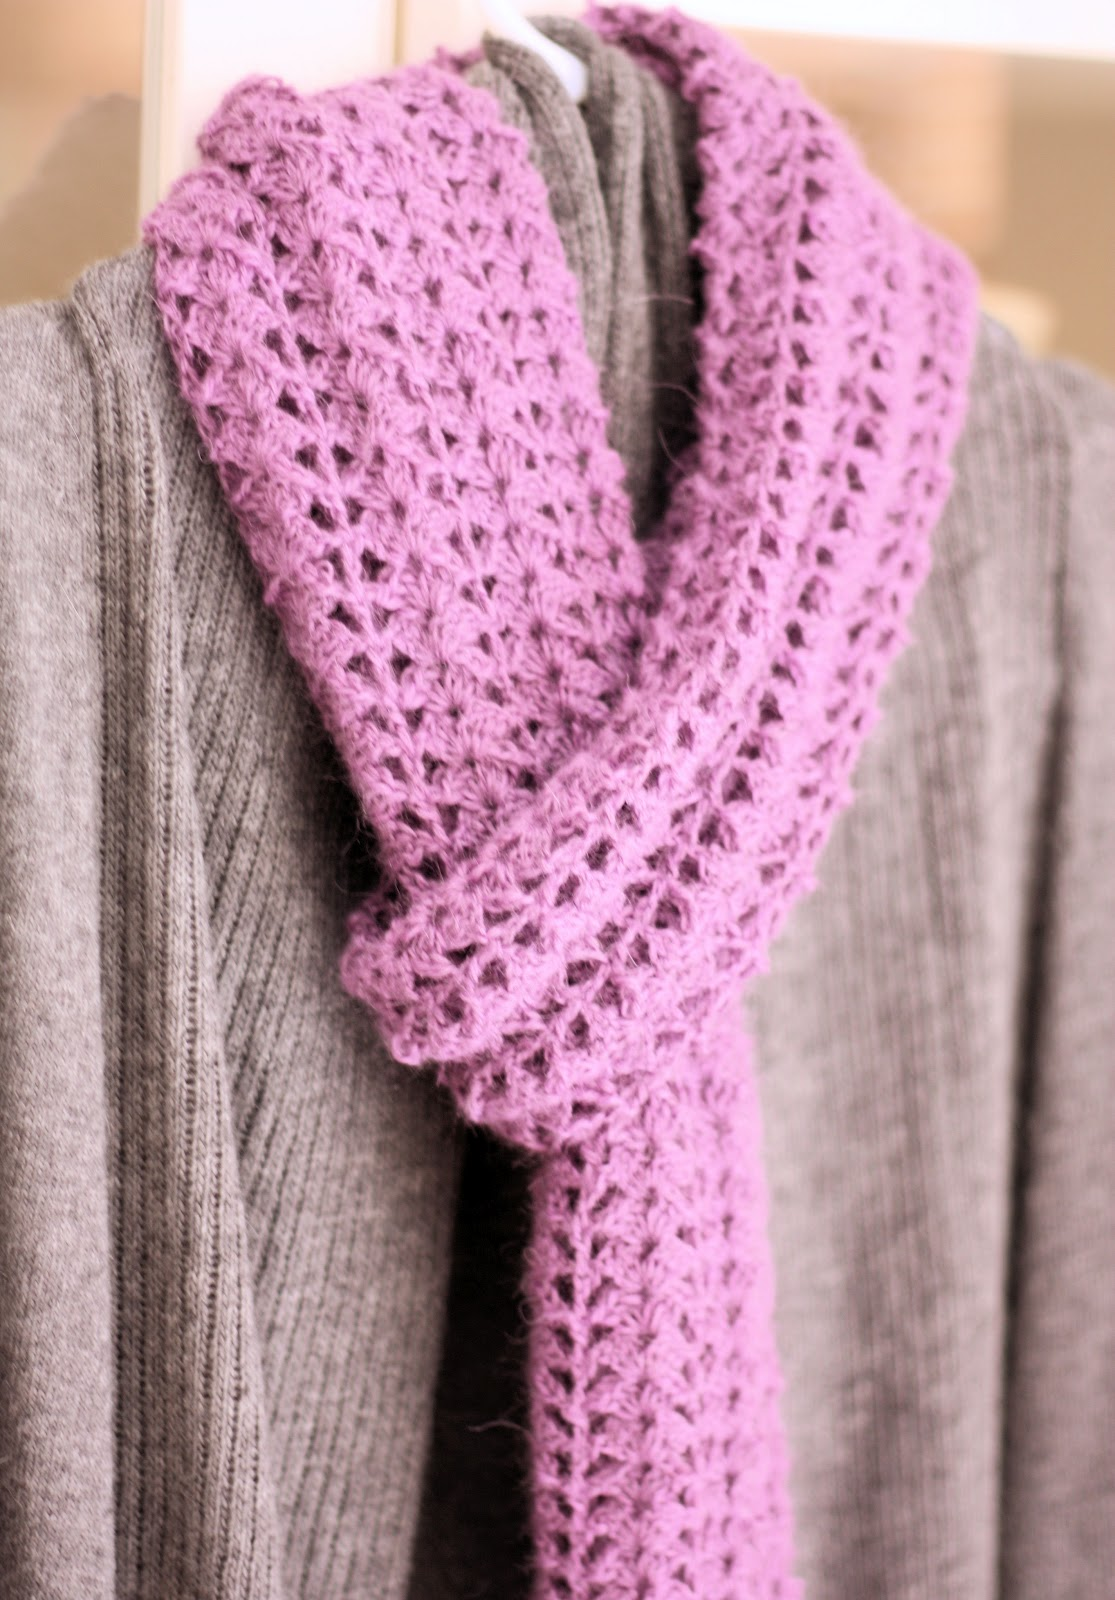 Crocheted scarf free pattern a spoonful of sugar for your daily sugar fix you can subscribe or follow us on facebook twitter and google plus bankloansurffo Choice Image